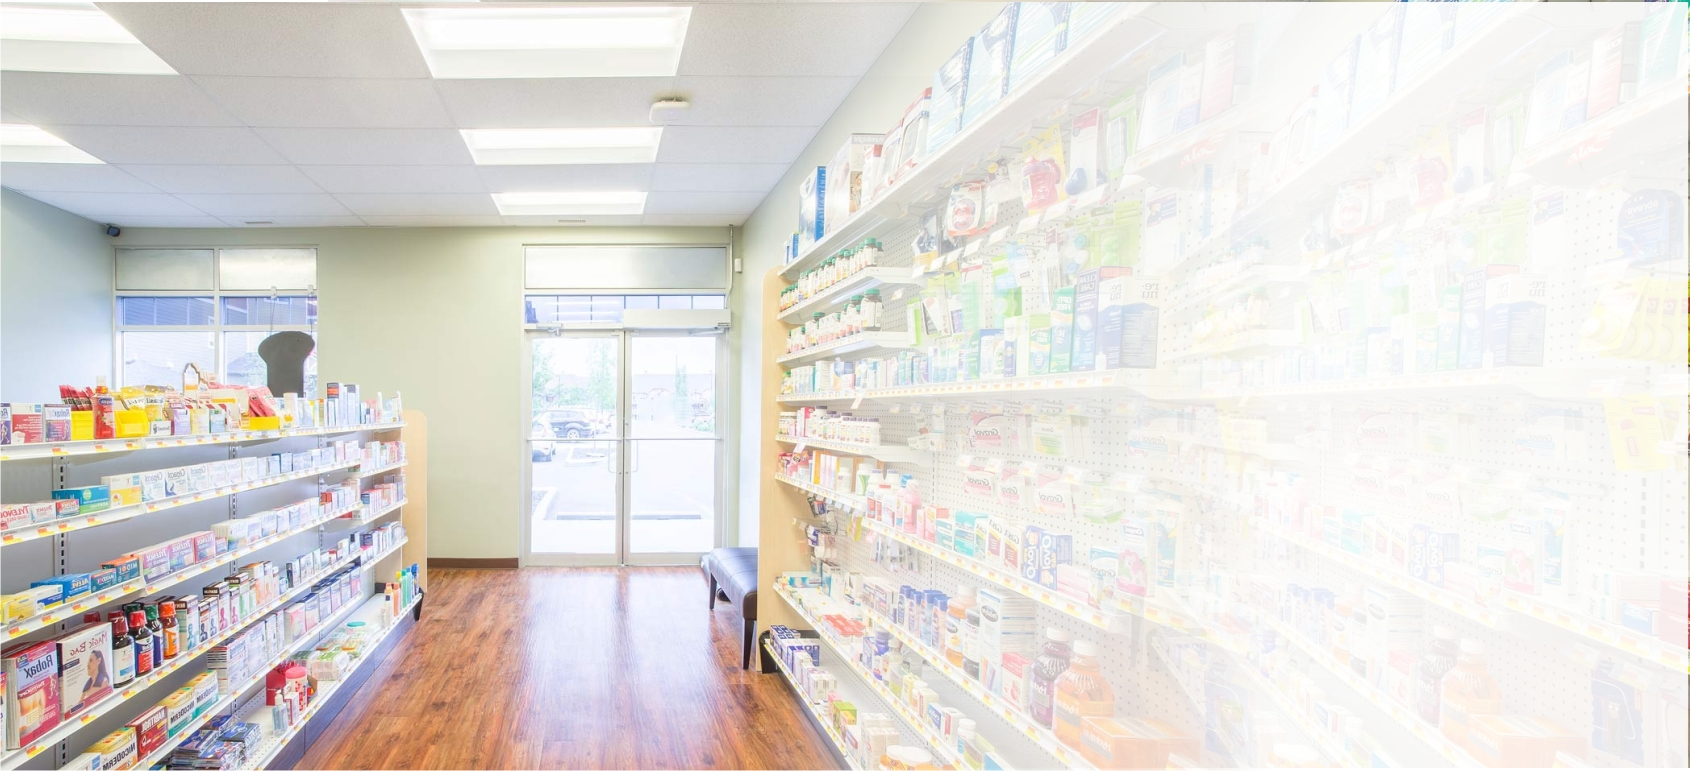 Welcome to Rx Online Pharmacy